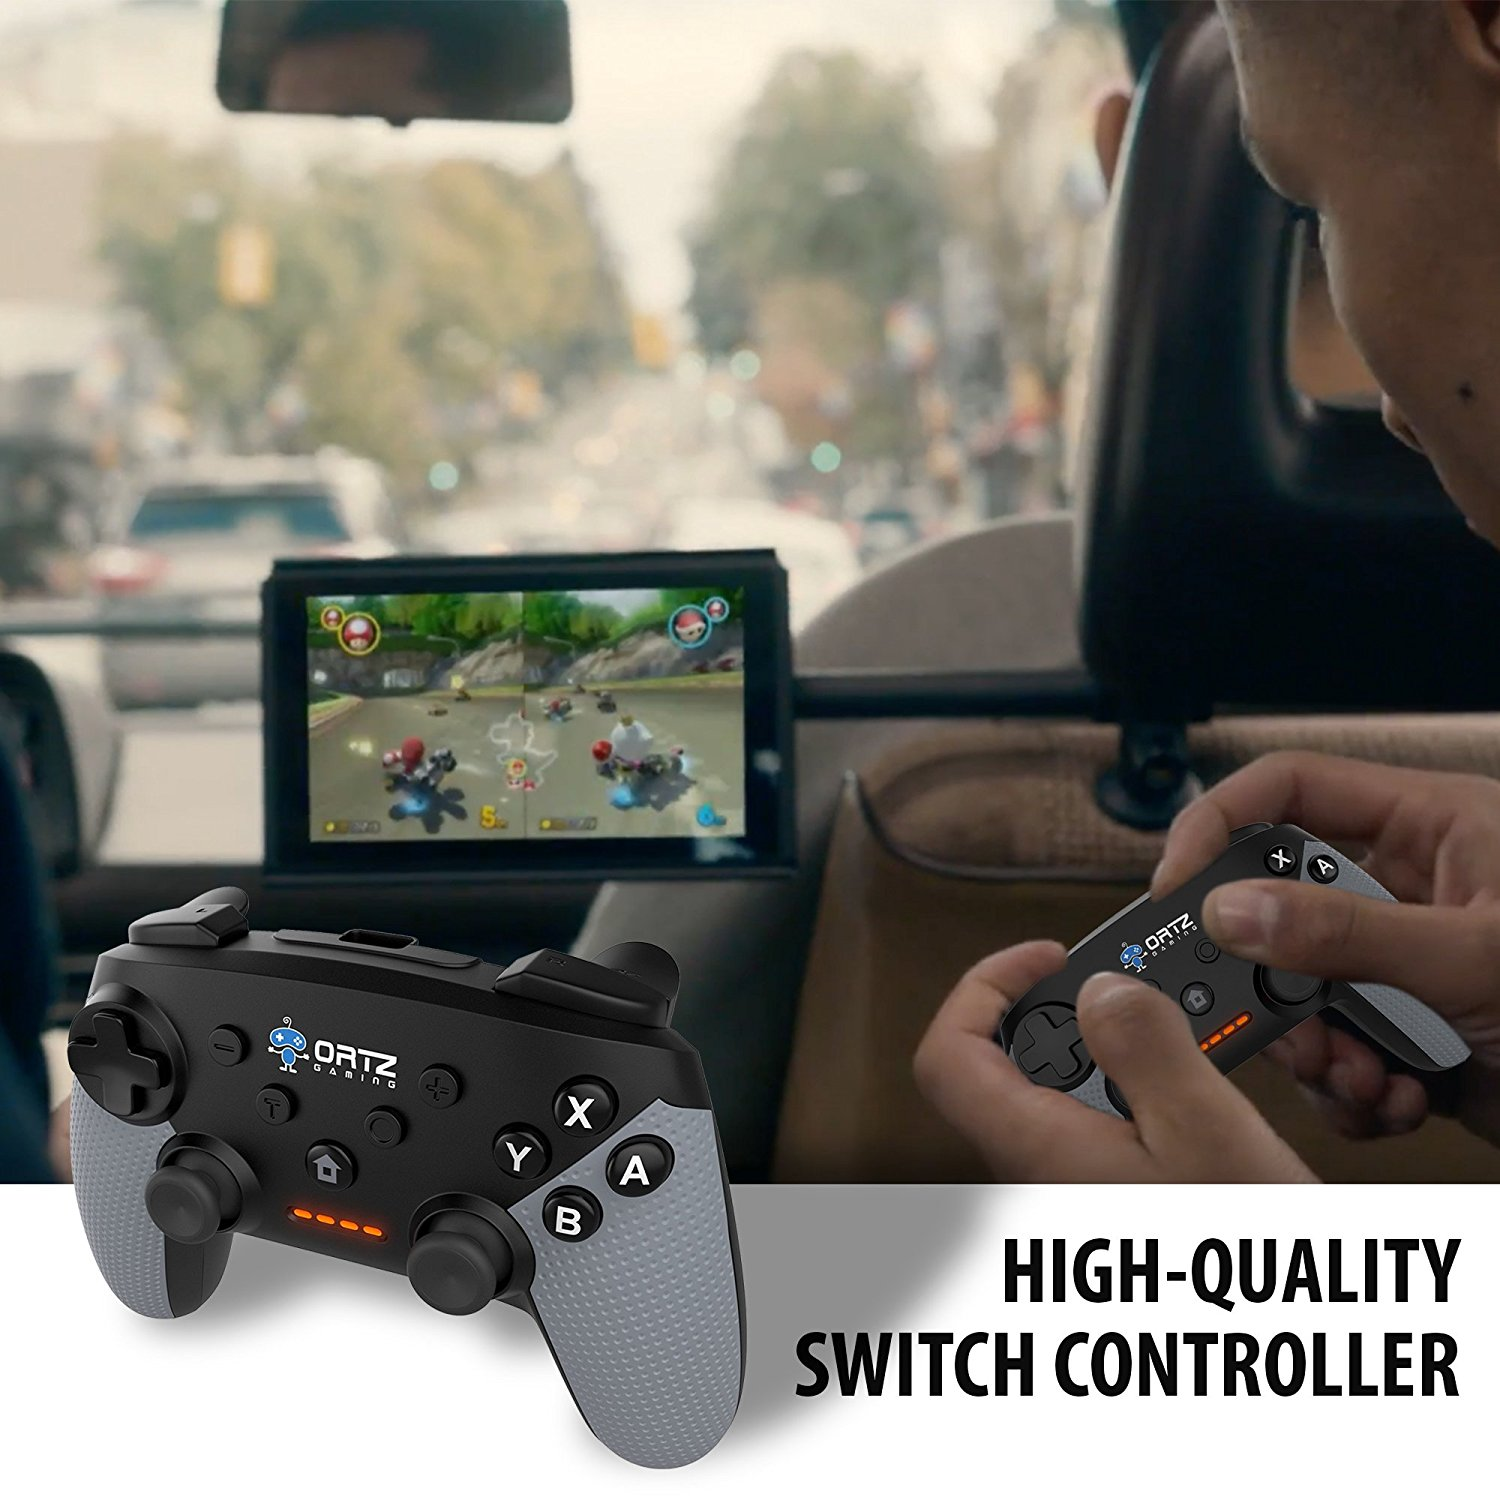 Ortz Wireless Gaming Controller for Nintendo Switch [Free Analog  Replacements] GamePad Remote - Best PC USB Computer, Windows 7 &10, Android